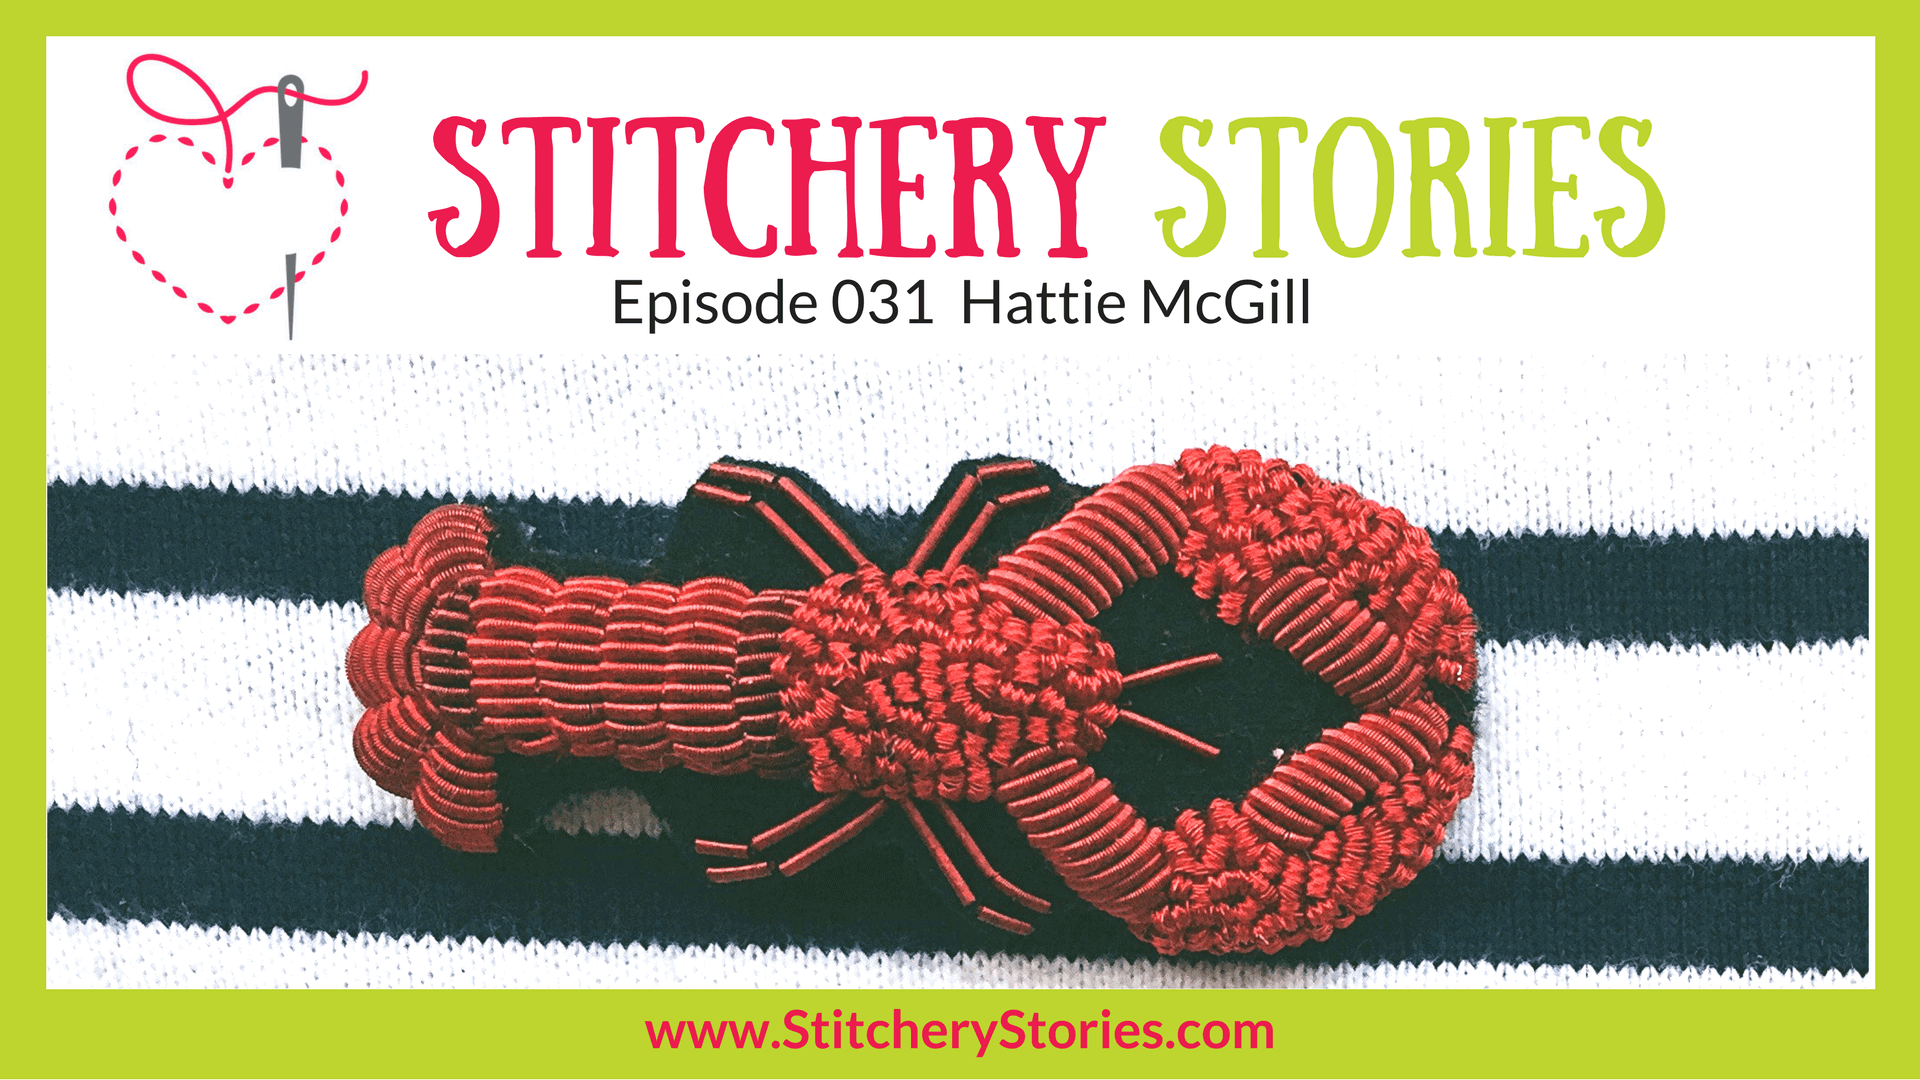 Hattie McGill Stitchery Stories Textile Art Podcast Wide Art